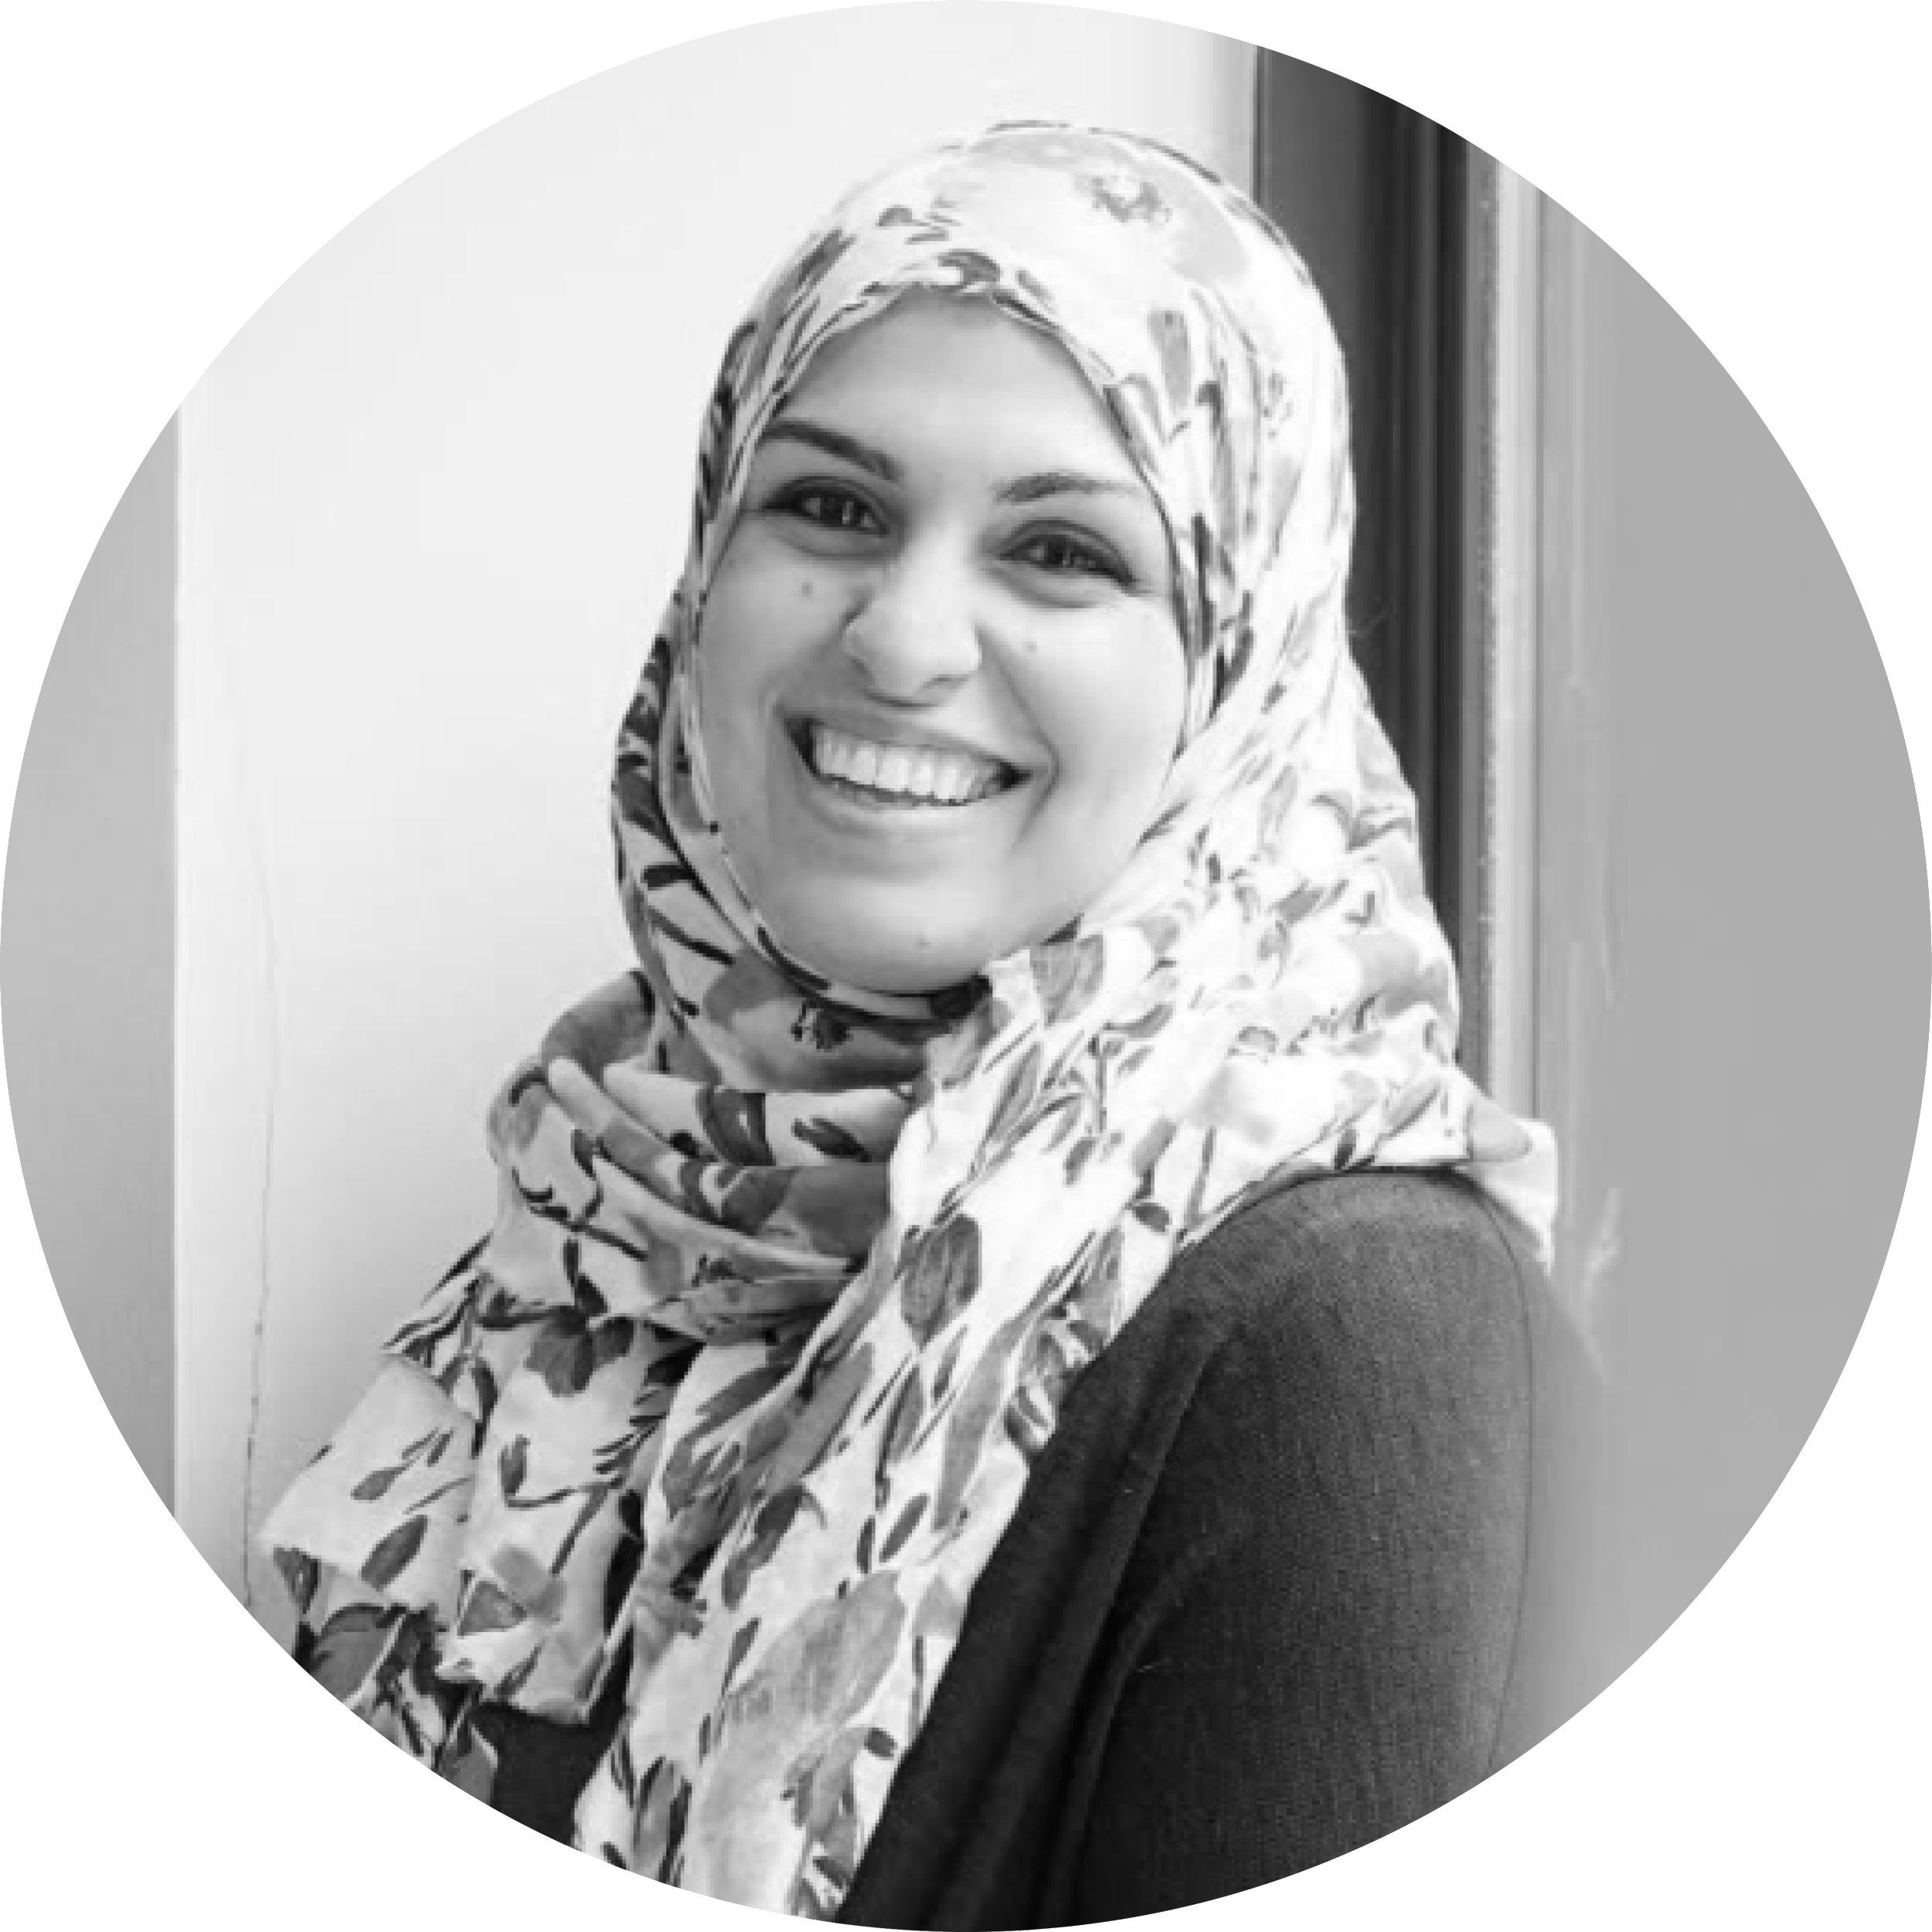 Rusul Alrubail - Executive Director of Parkdale Centre for InnovationRusul is the Founder & Executive Director of Parkdale Centre. Rusul is also a writer, social justice advocate, and mom of two.